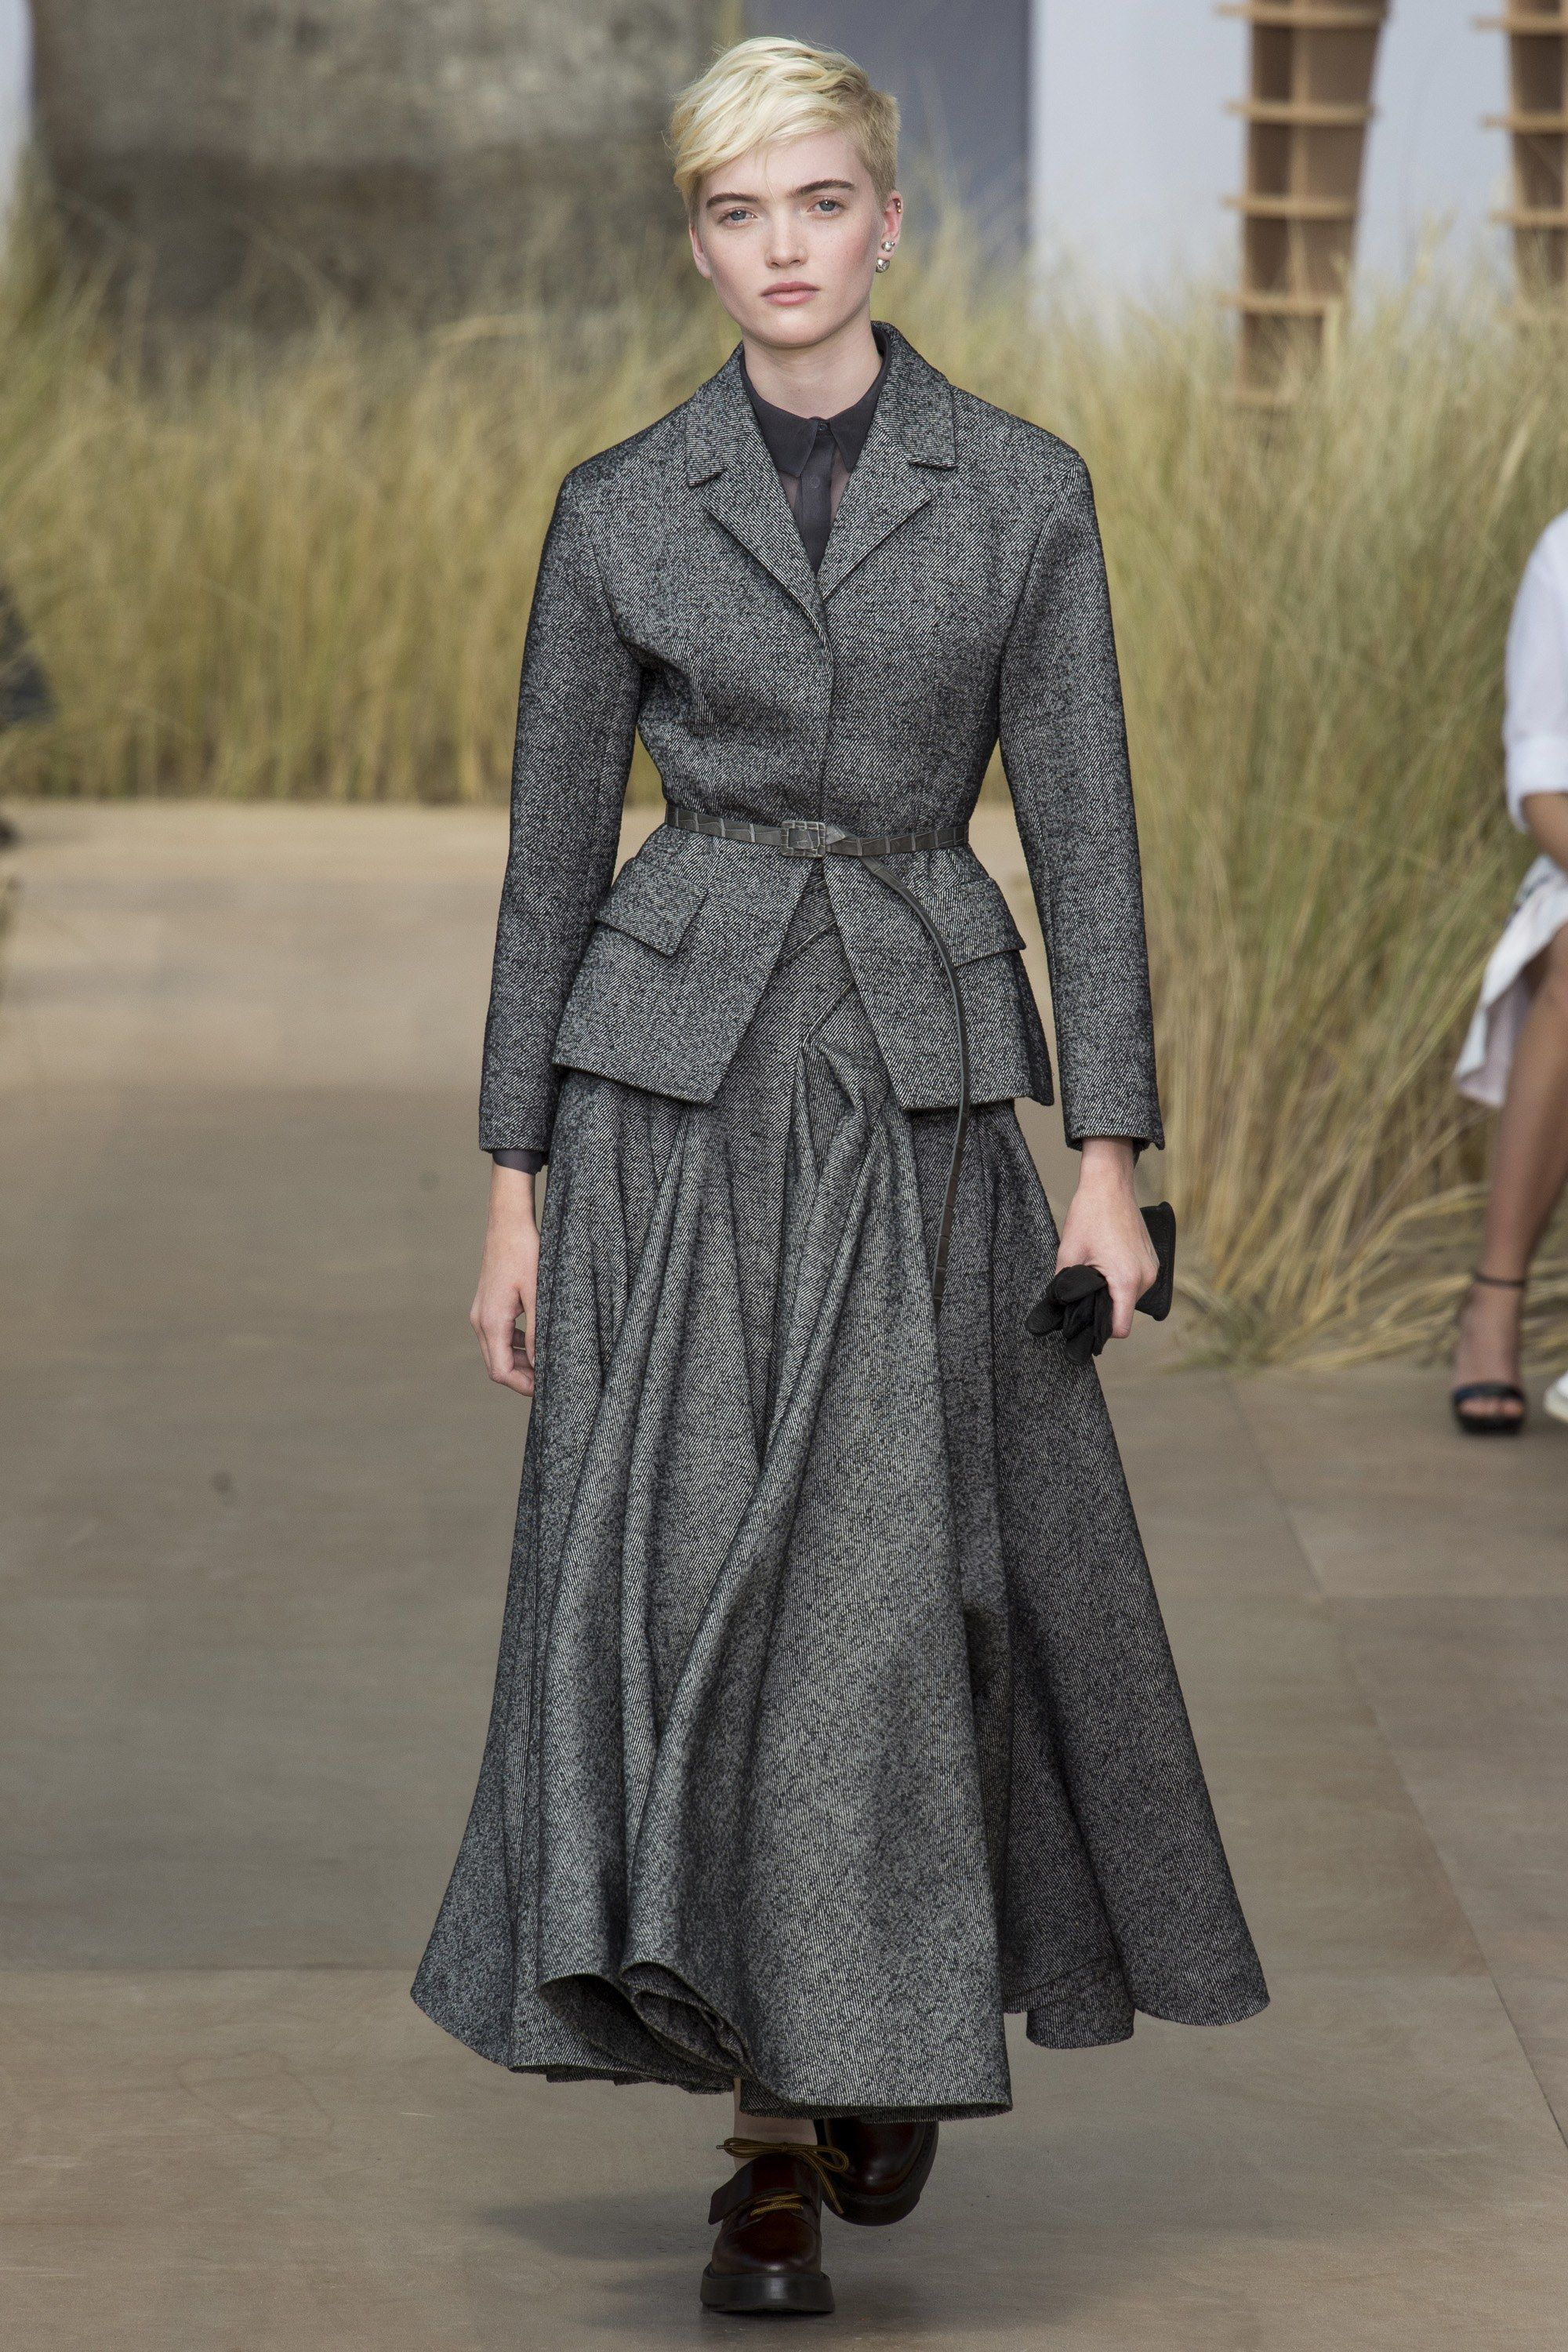 Dior christian haute couture fall runway